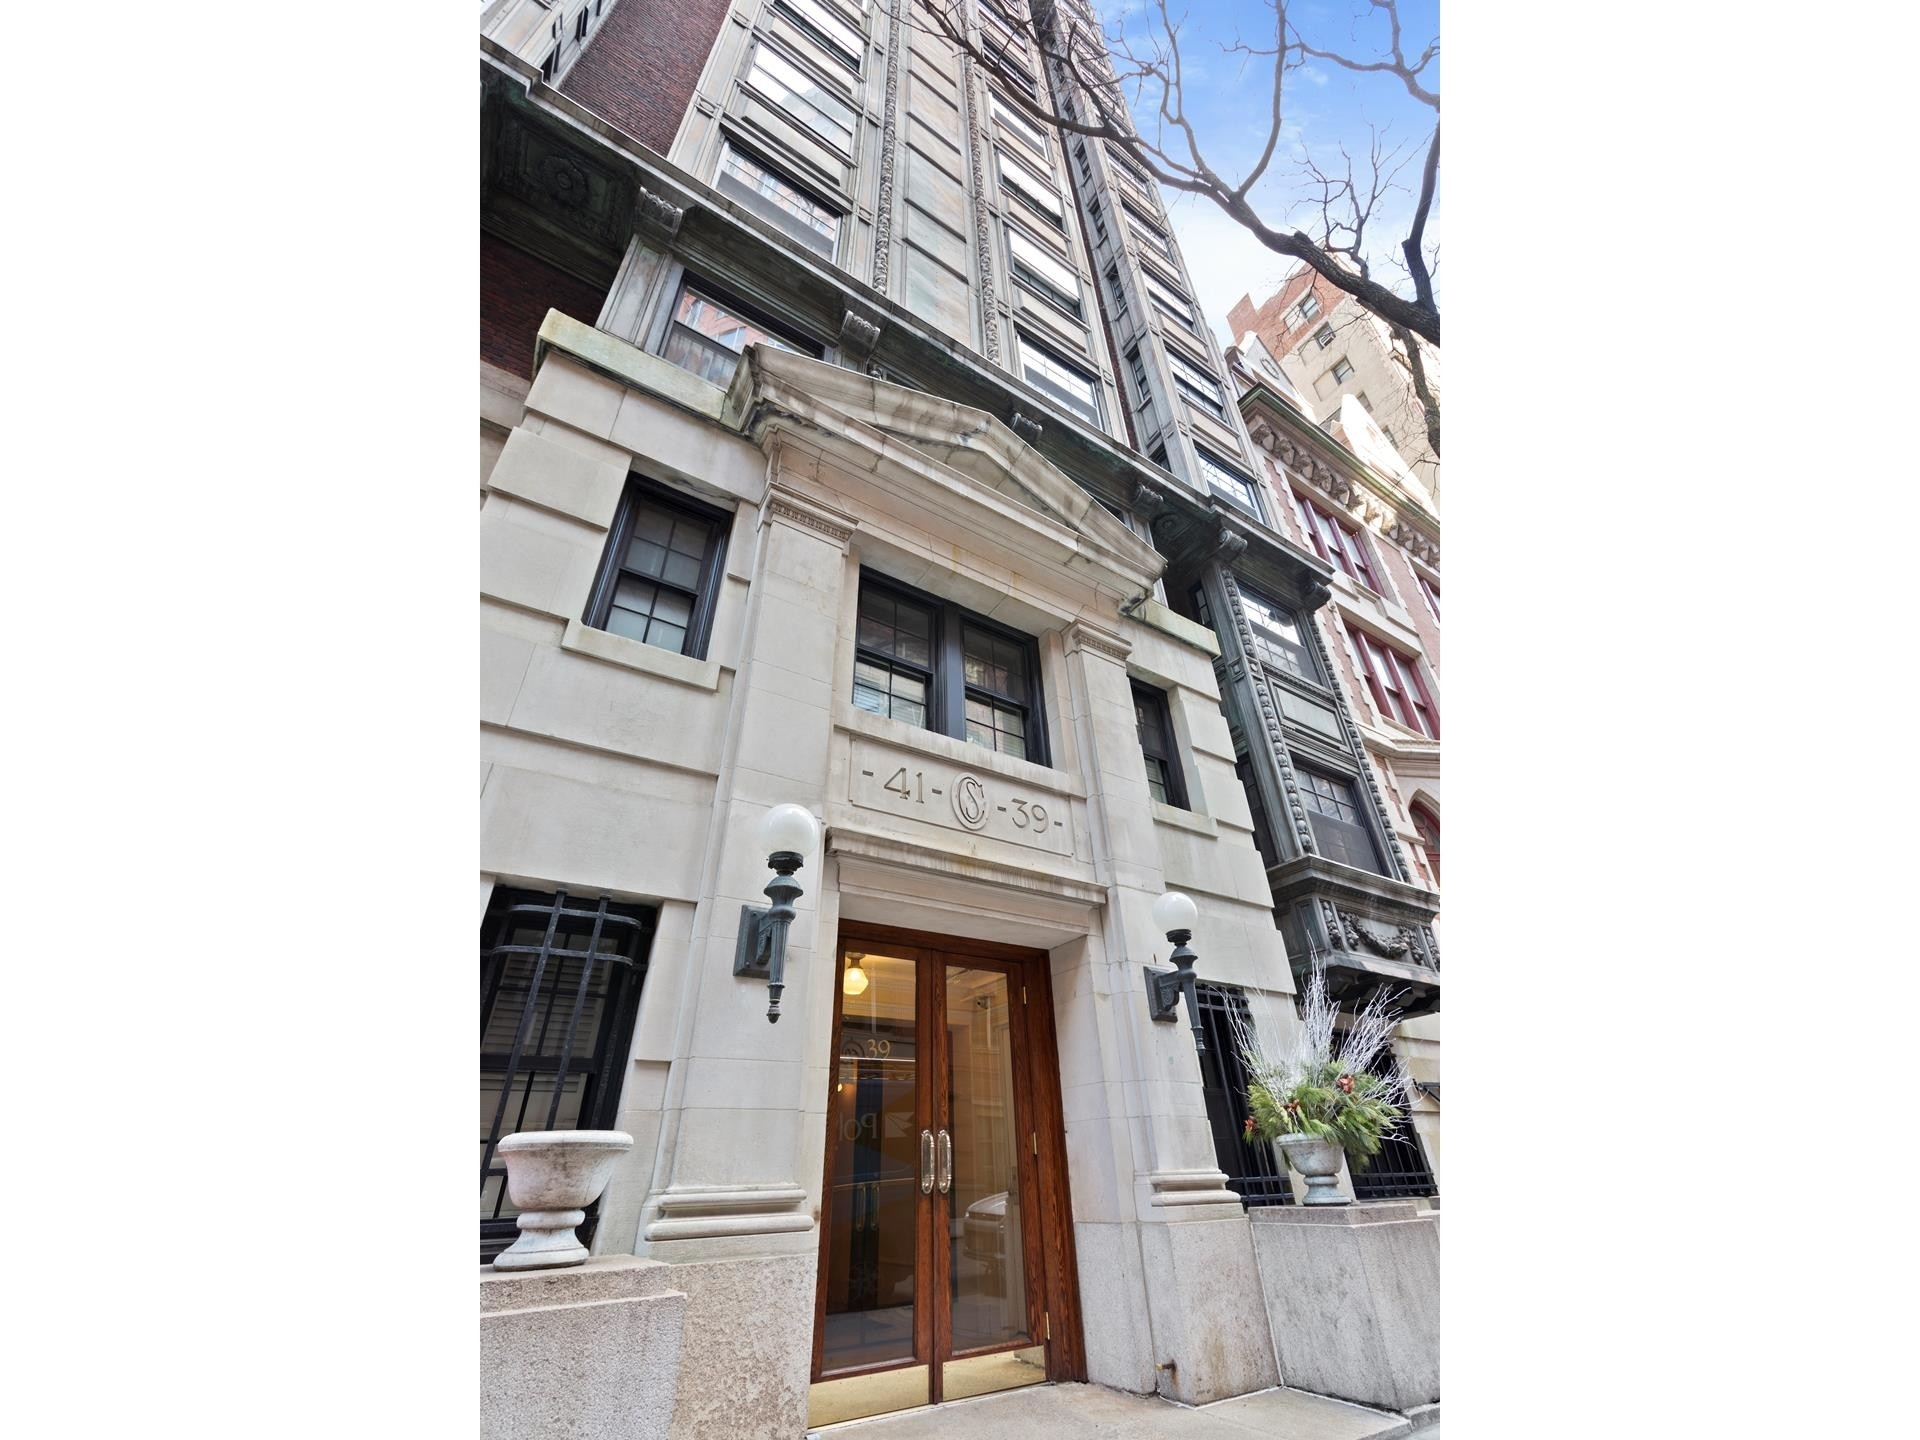 11. Co-op Properties 為 特賣 在 Colonial Studios, 39 W 67TH ST , 401402301 Lincoln Square, 纽约, NY 10023